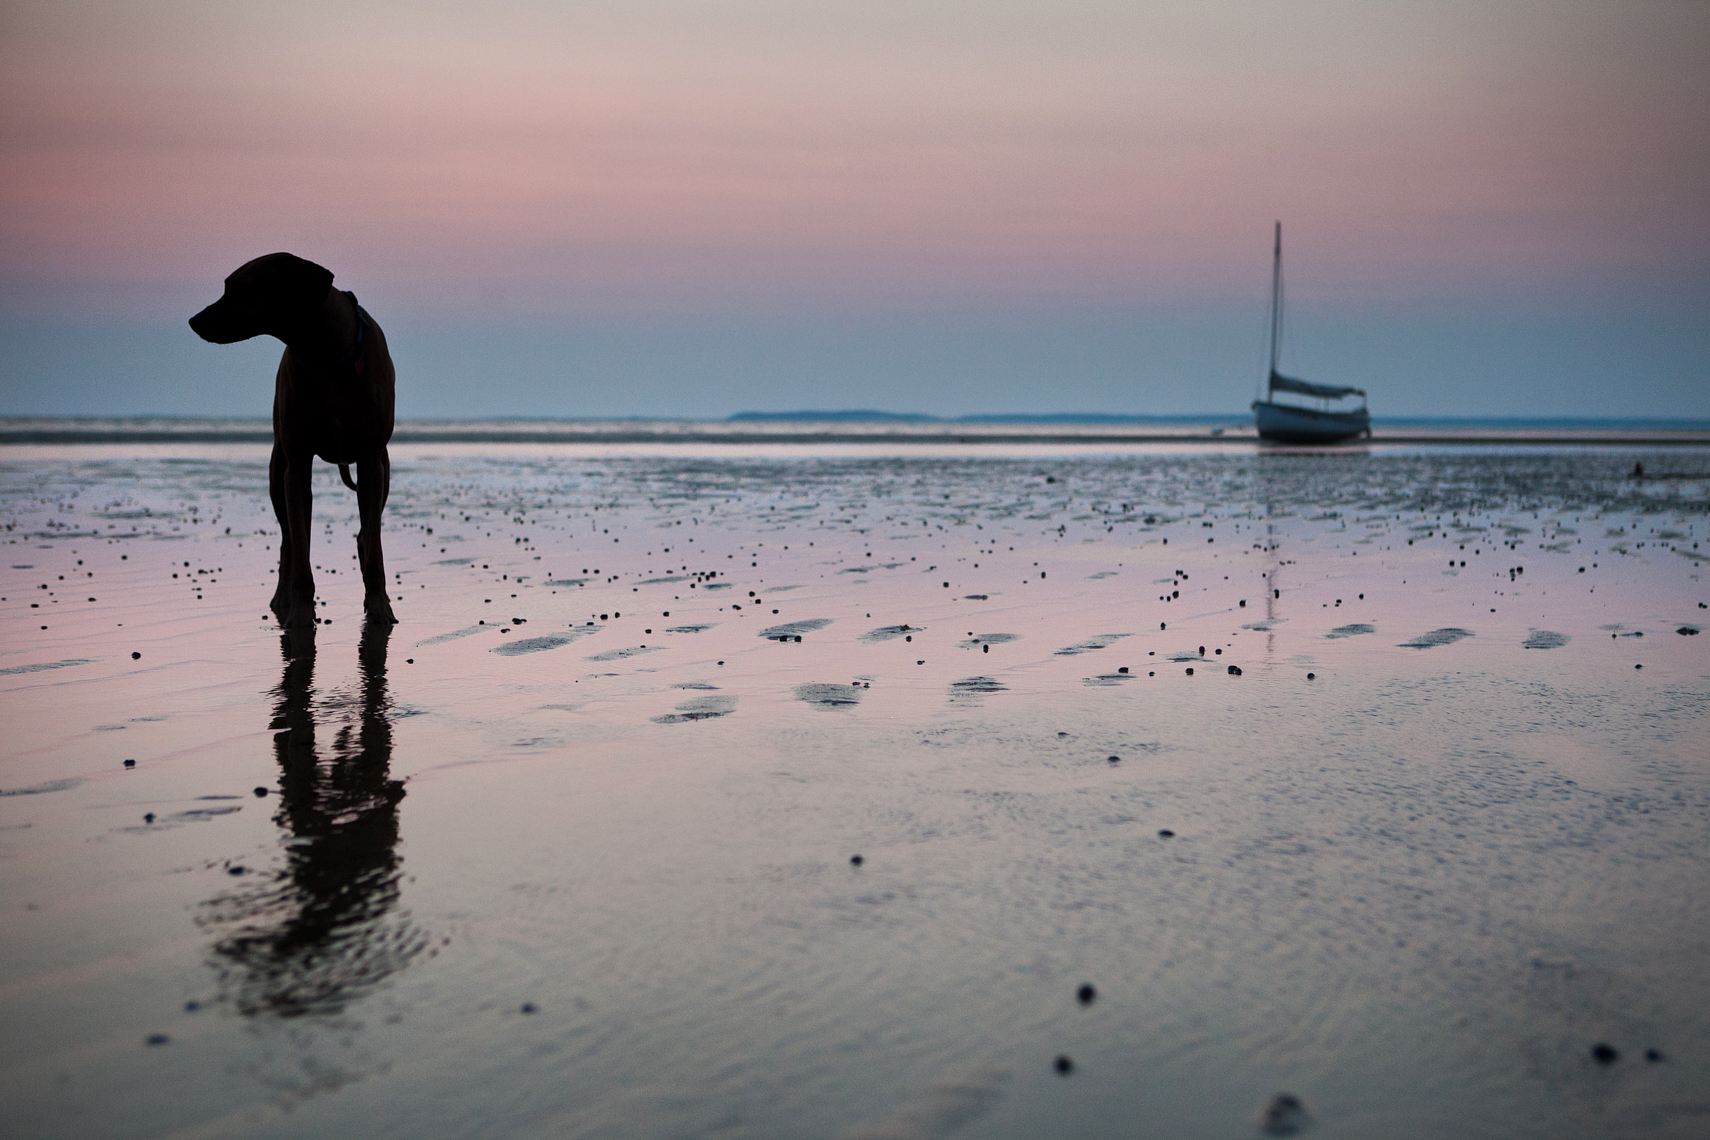 Silhouette of a dog during low tide